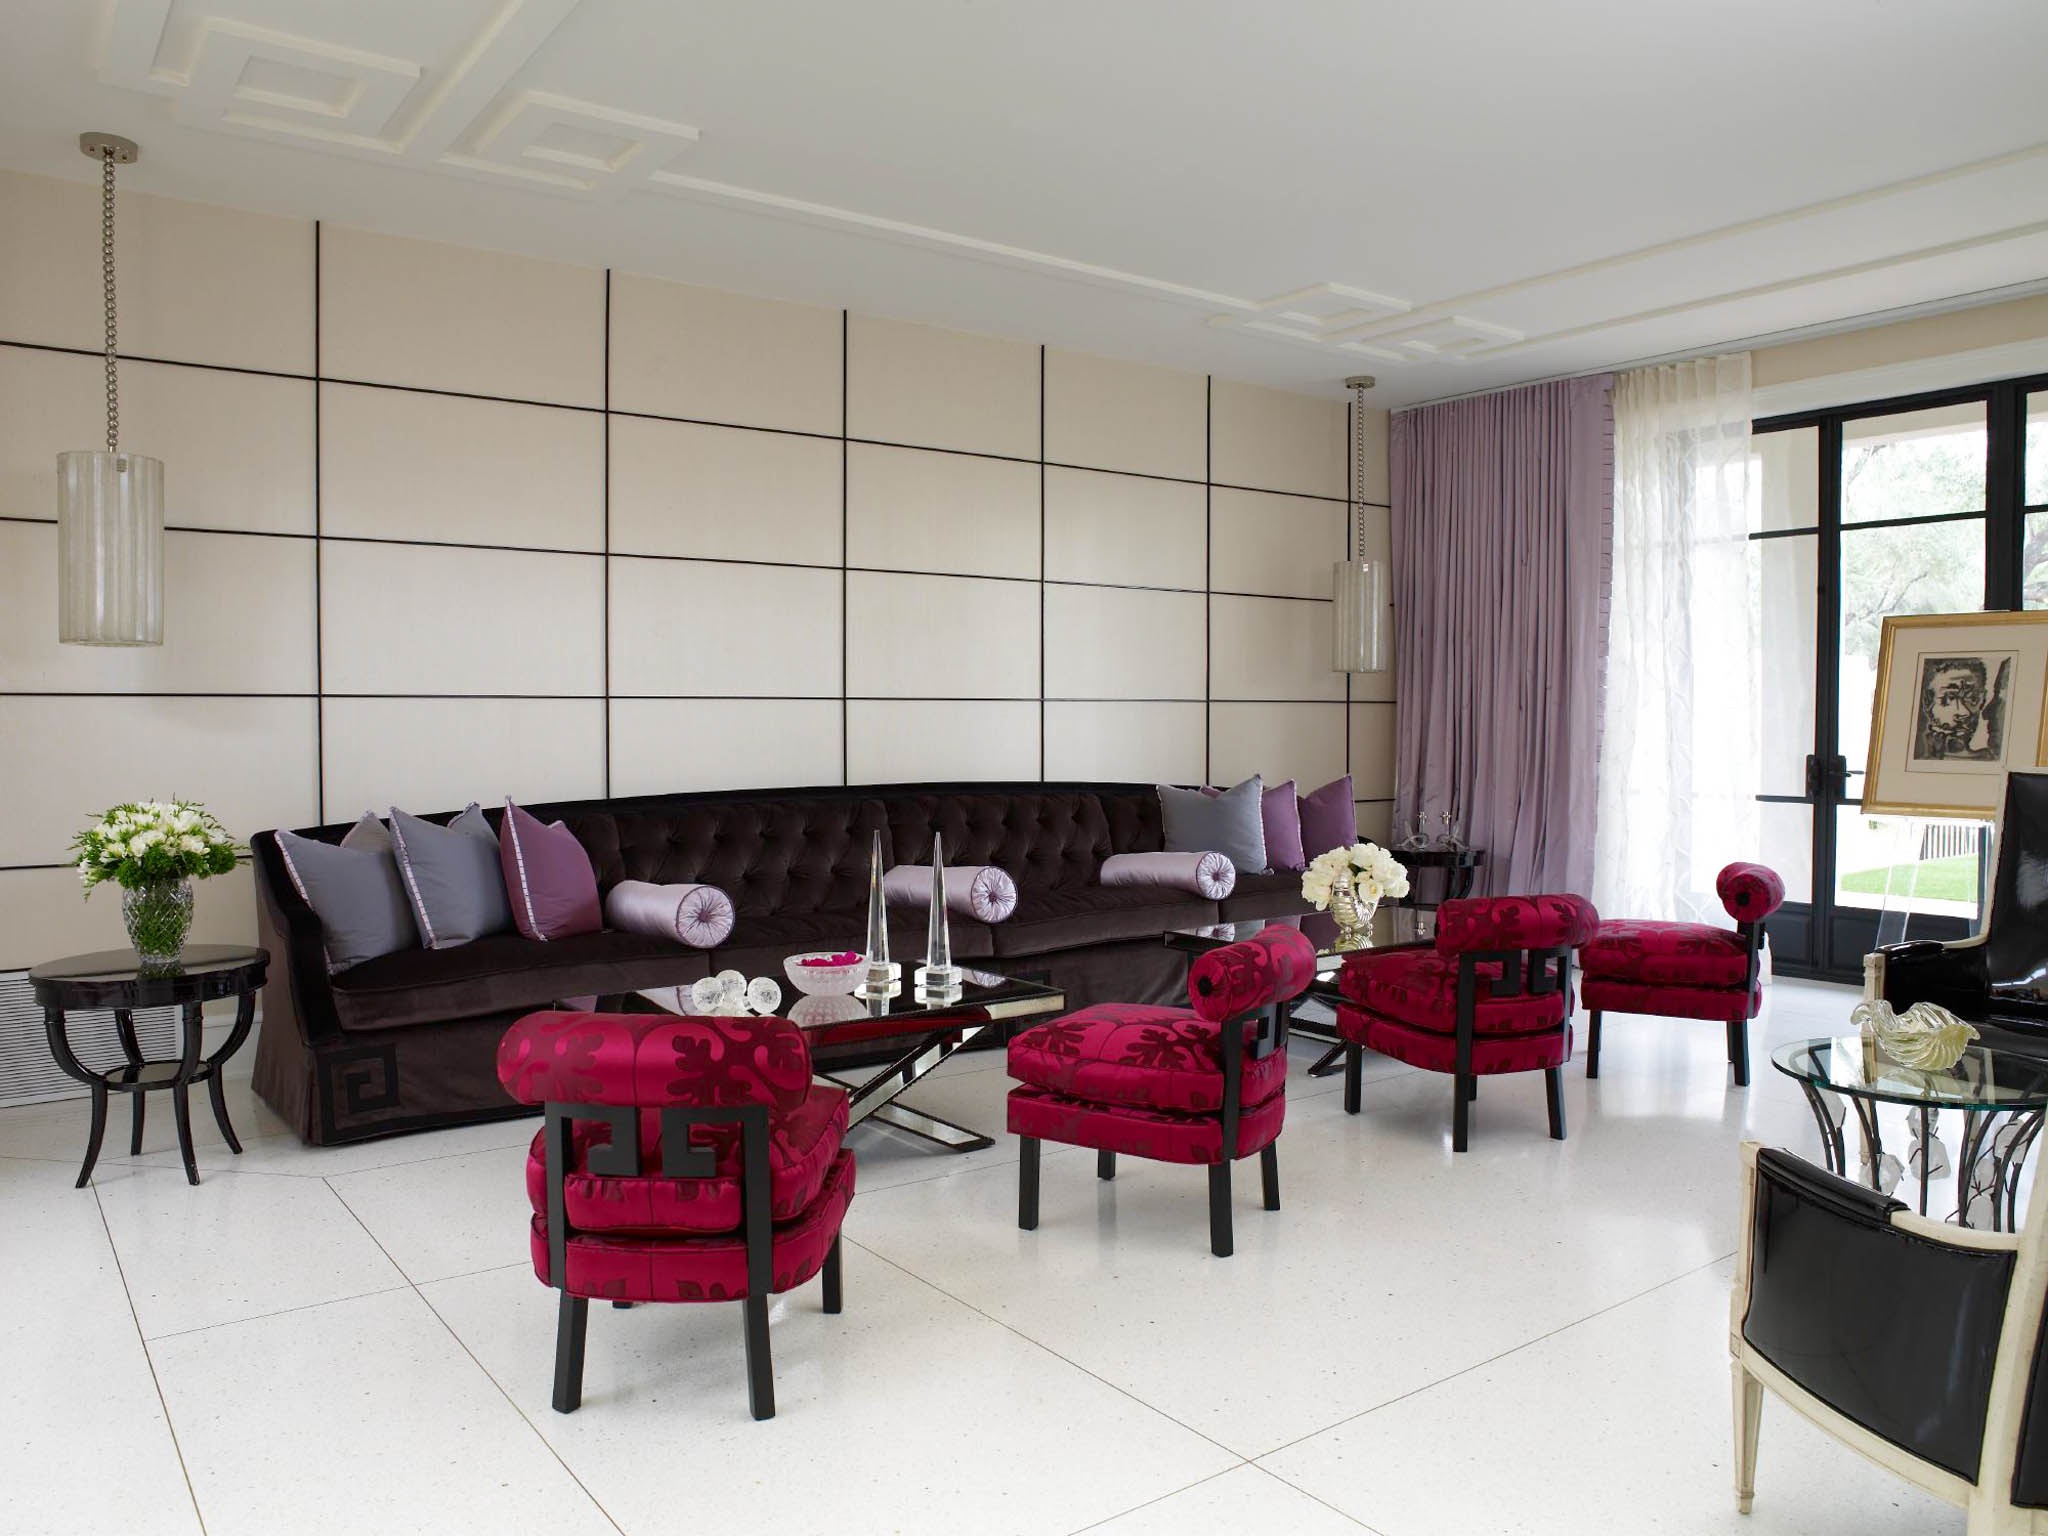 White Art Deco Living Room With Ceramic Flooring (View 15 of 15)